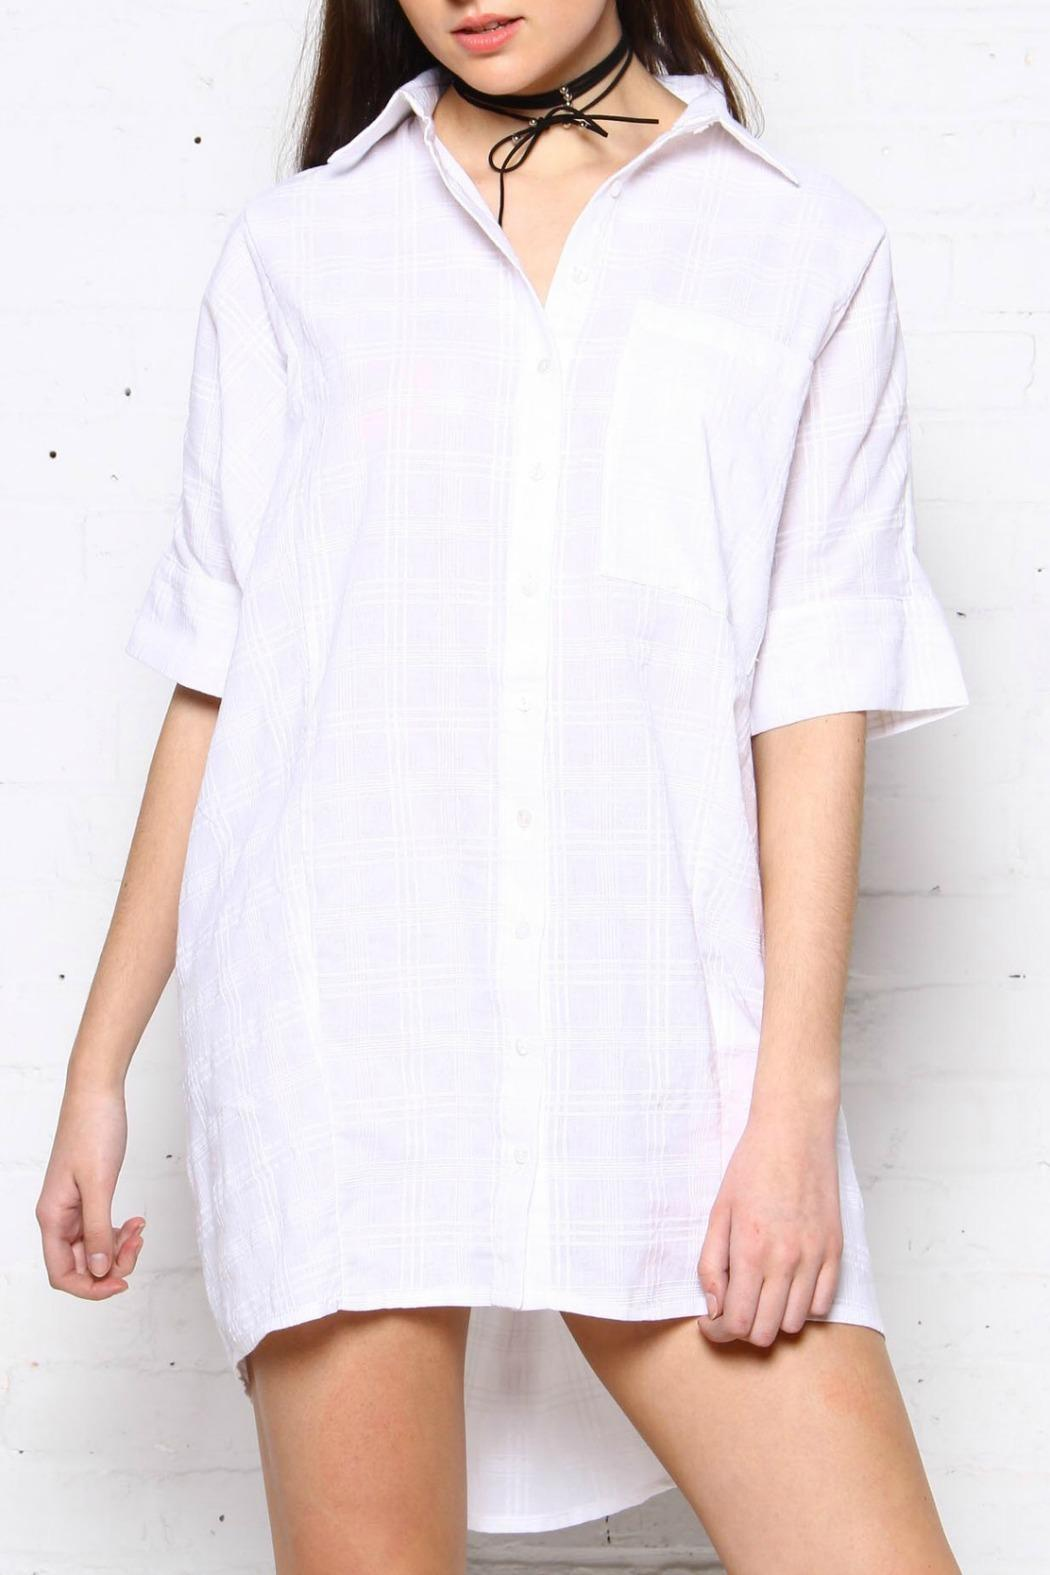 Free shipping boyfriend shirt online store. Best boyfriend shirt for sale. Cheap boyfriend shirt with excellent quality and fast delivery. | omskbridge.ml